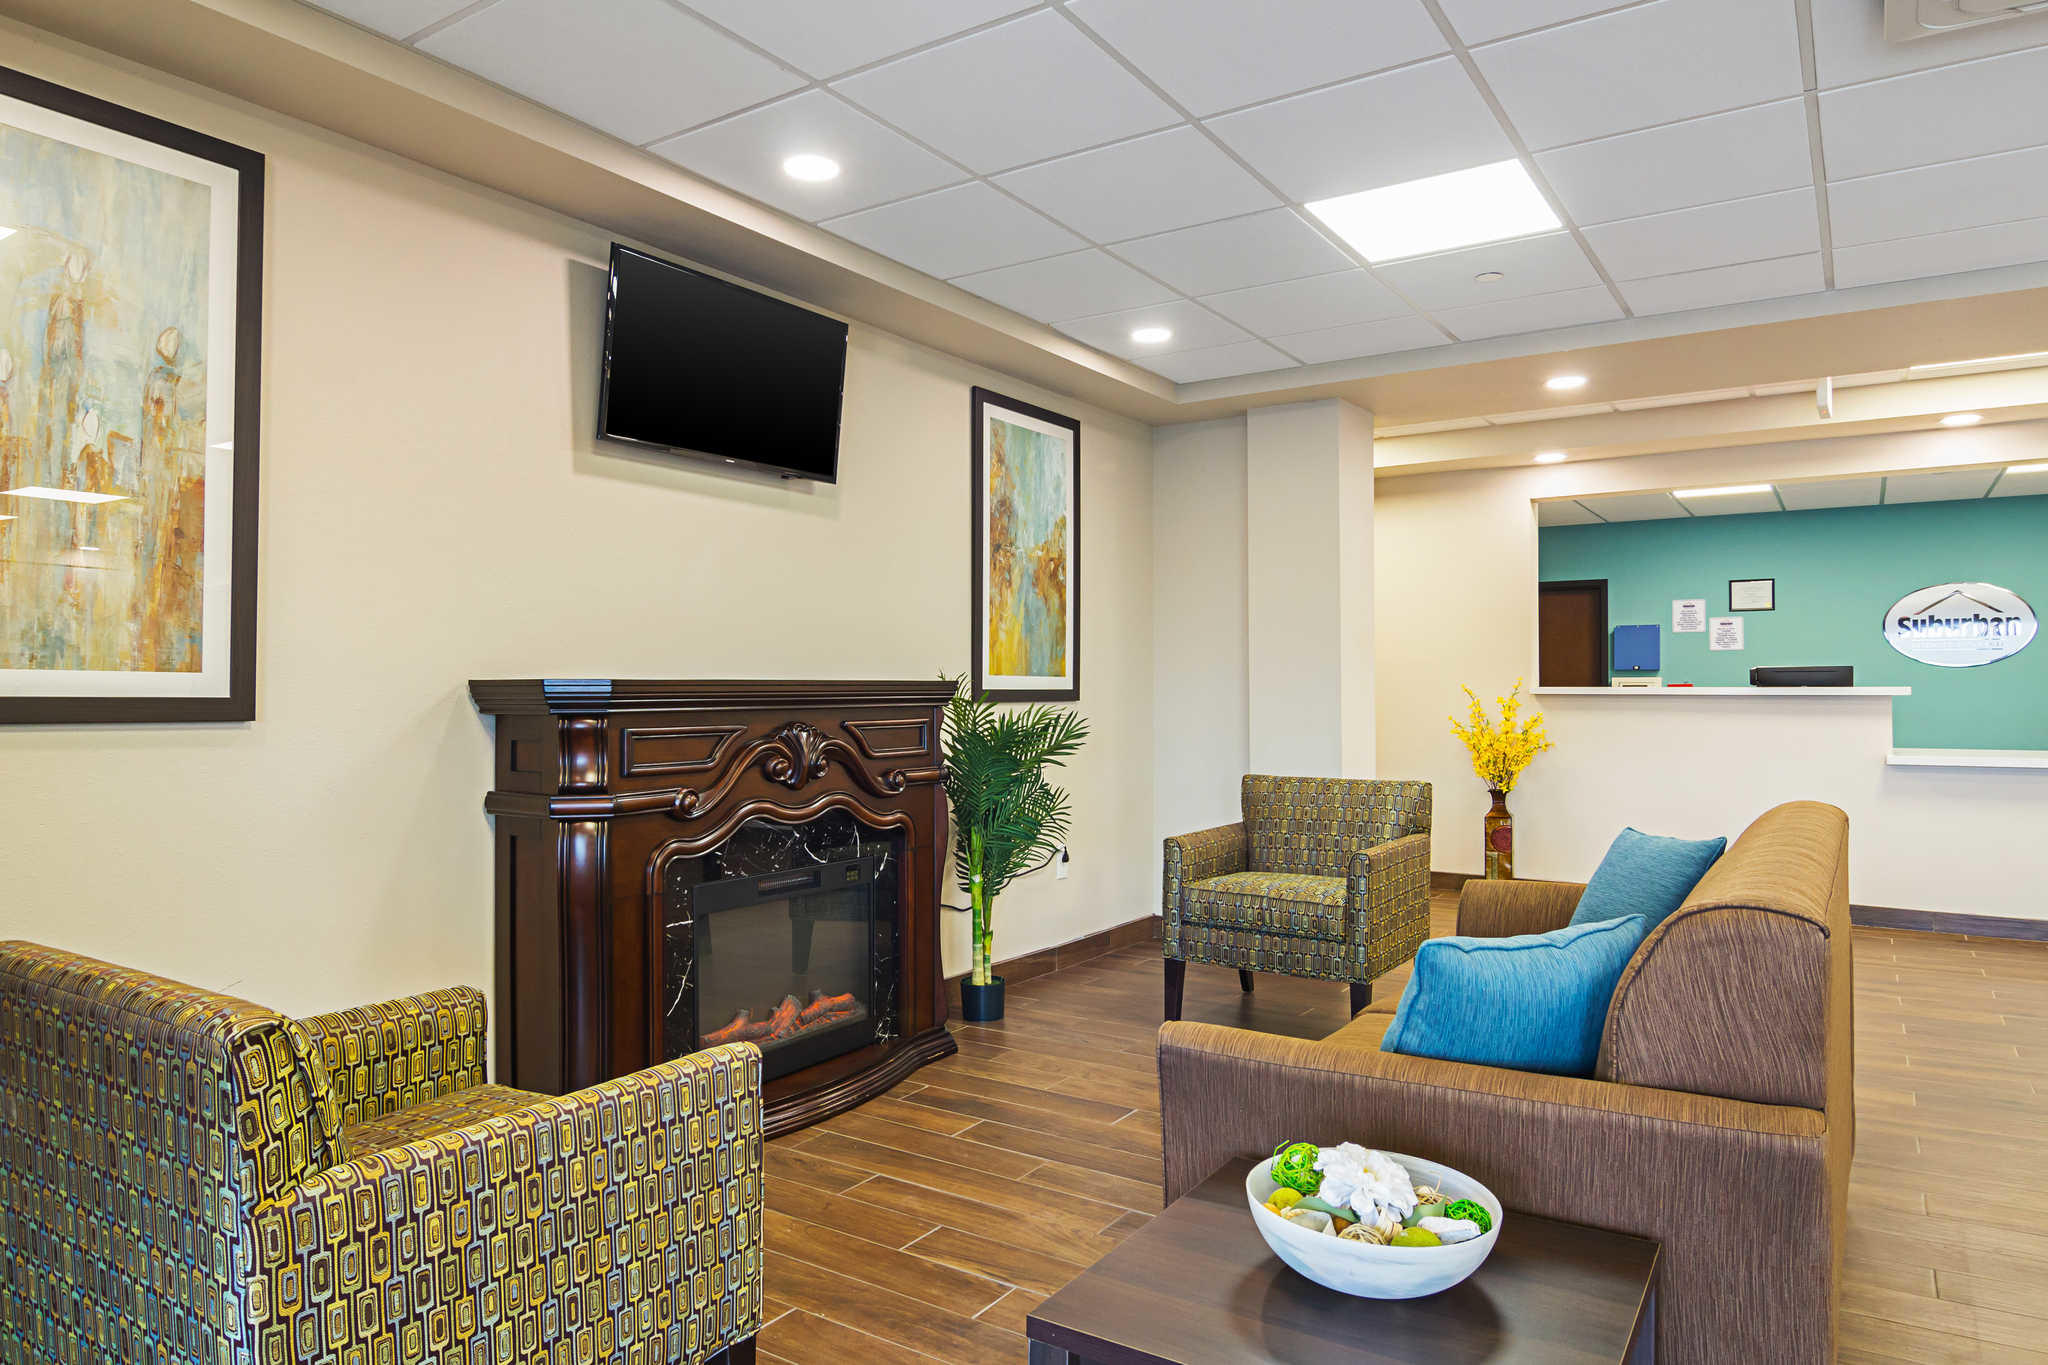 Suburban Extended Stay Hotel image 8